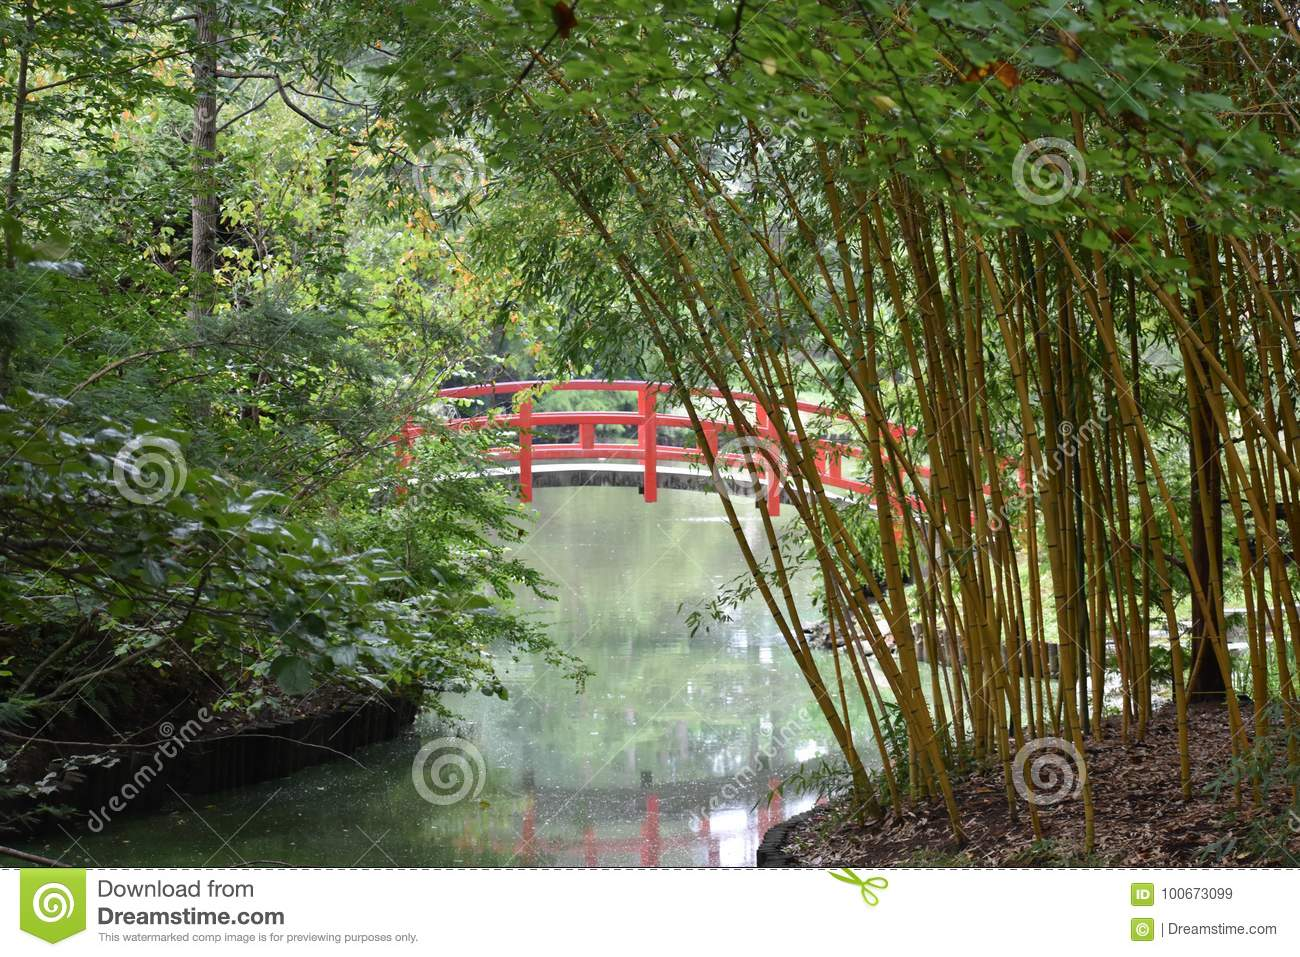 red japanese garden bridge arched over waterway and surrounded by bamboo trees - Red Japanese Garden Bridge